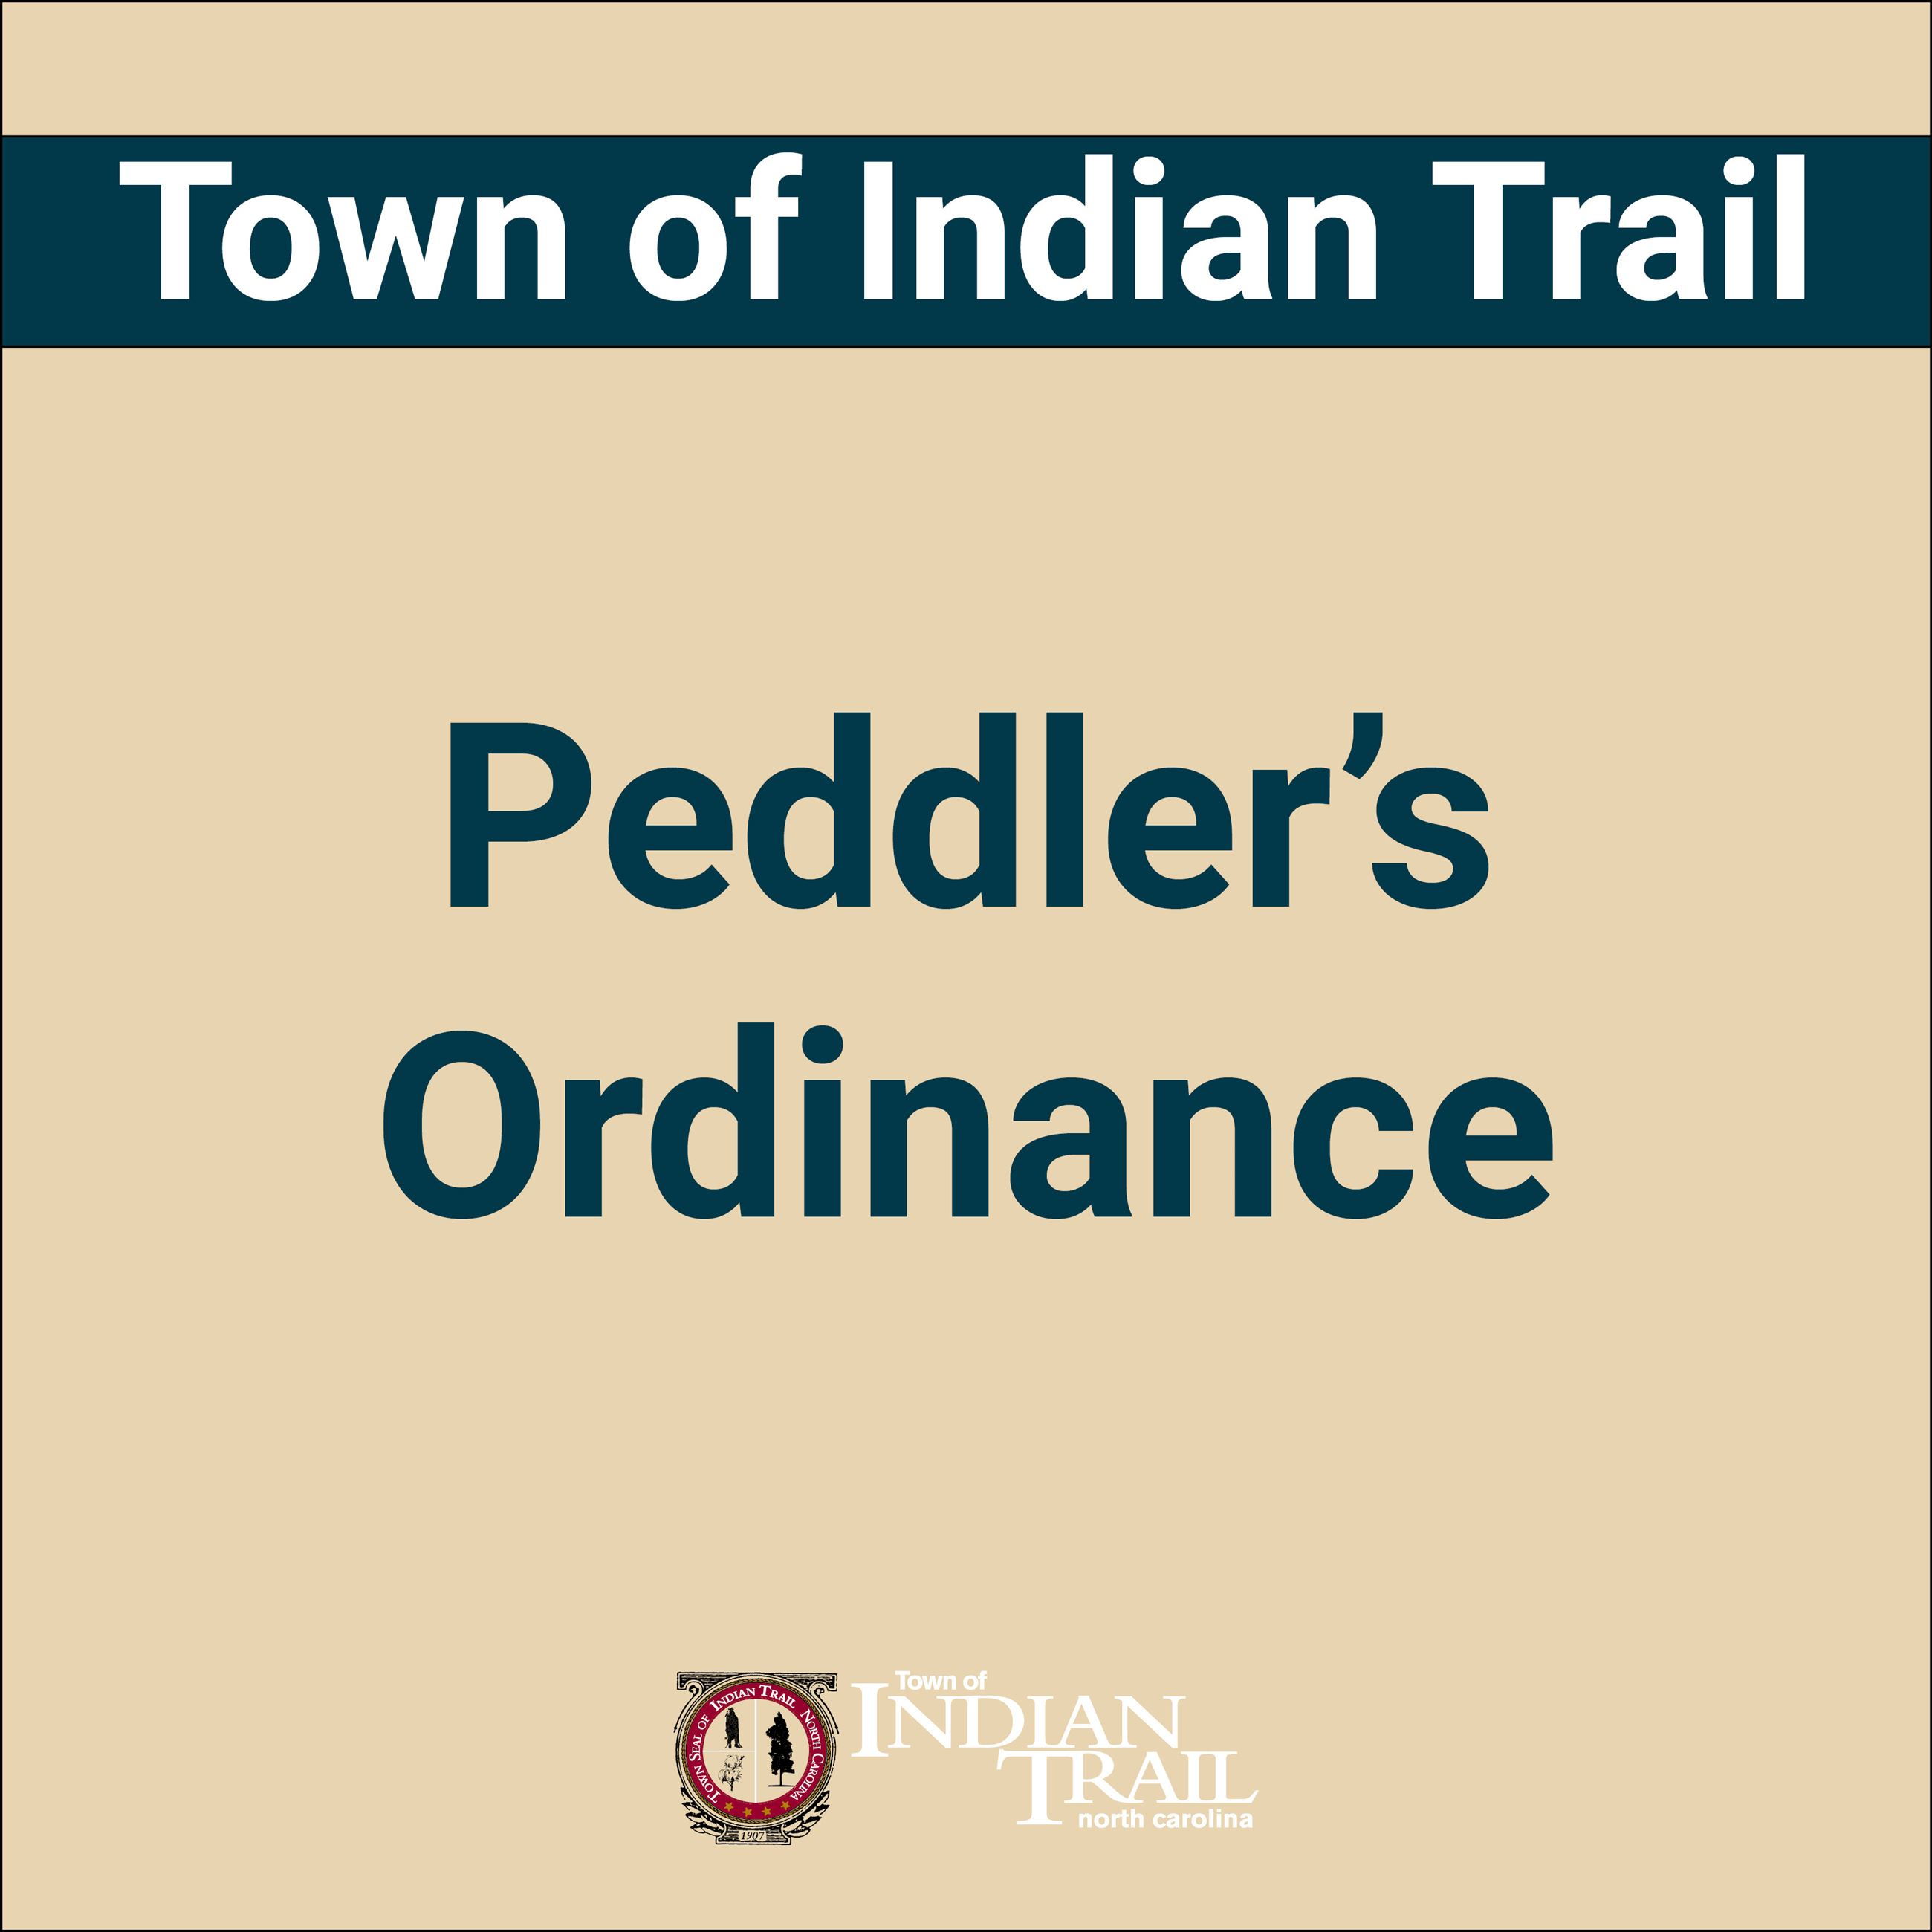 Peddler's Ordinance